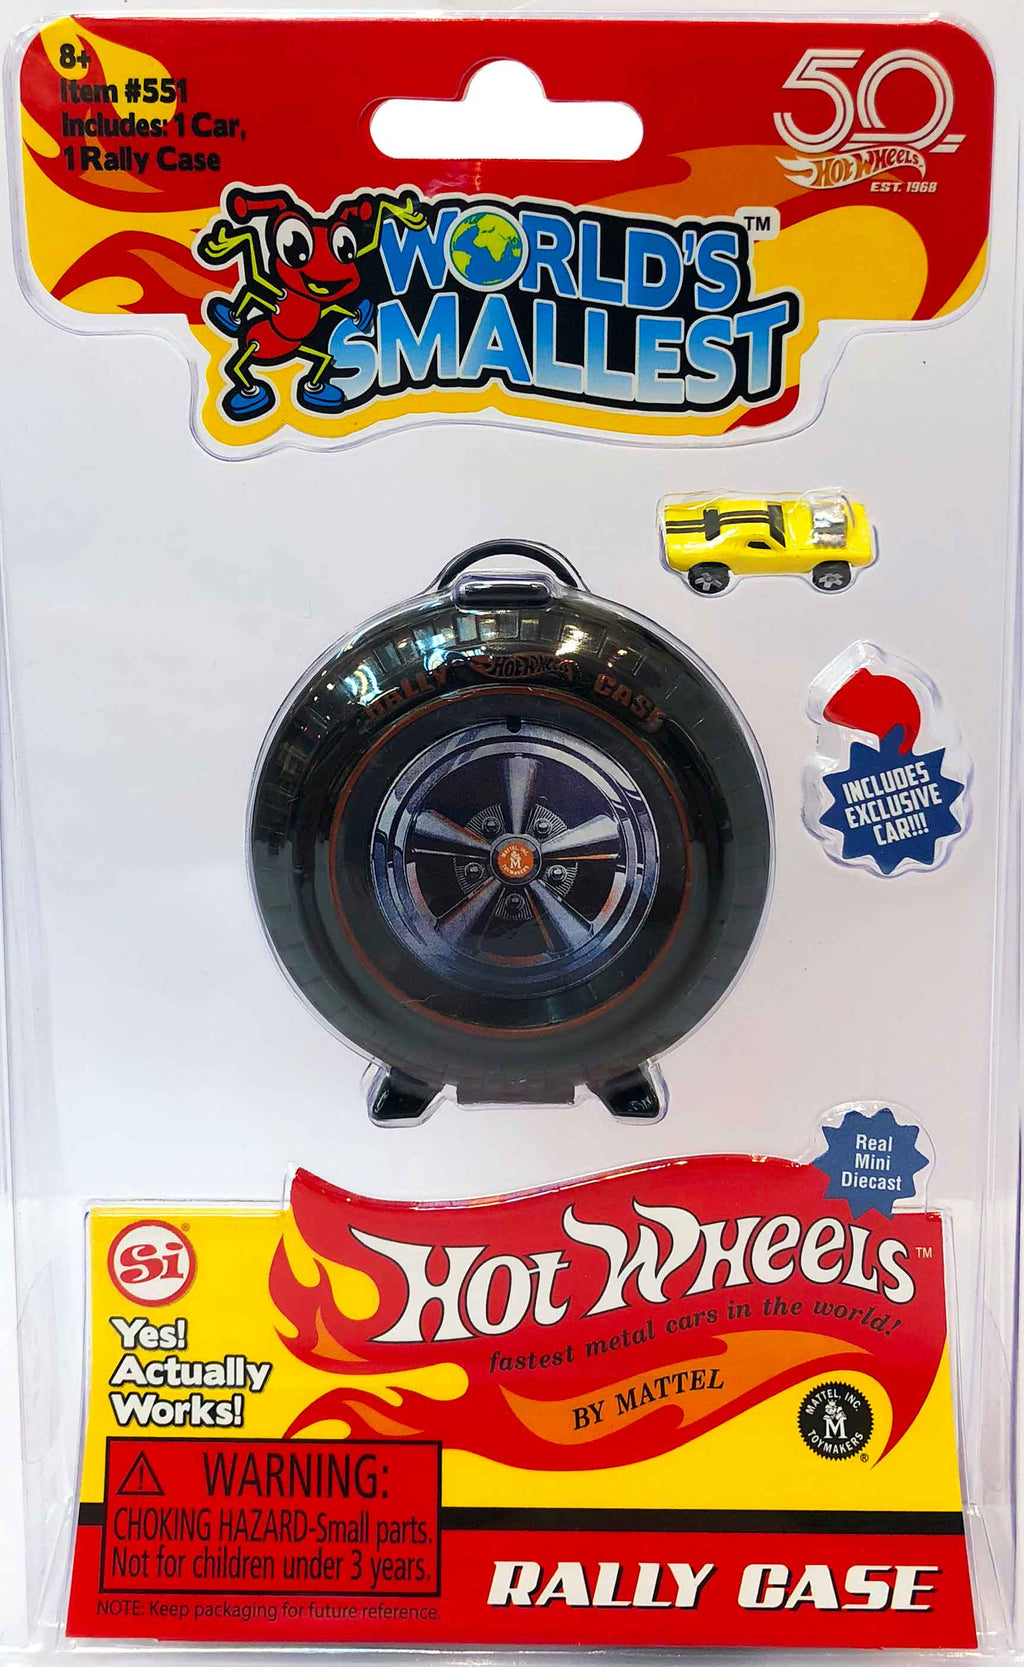 Worlds Smallest Hot Wheels Mini World Super Rally Case